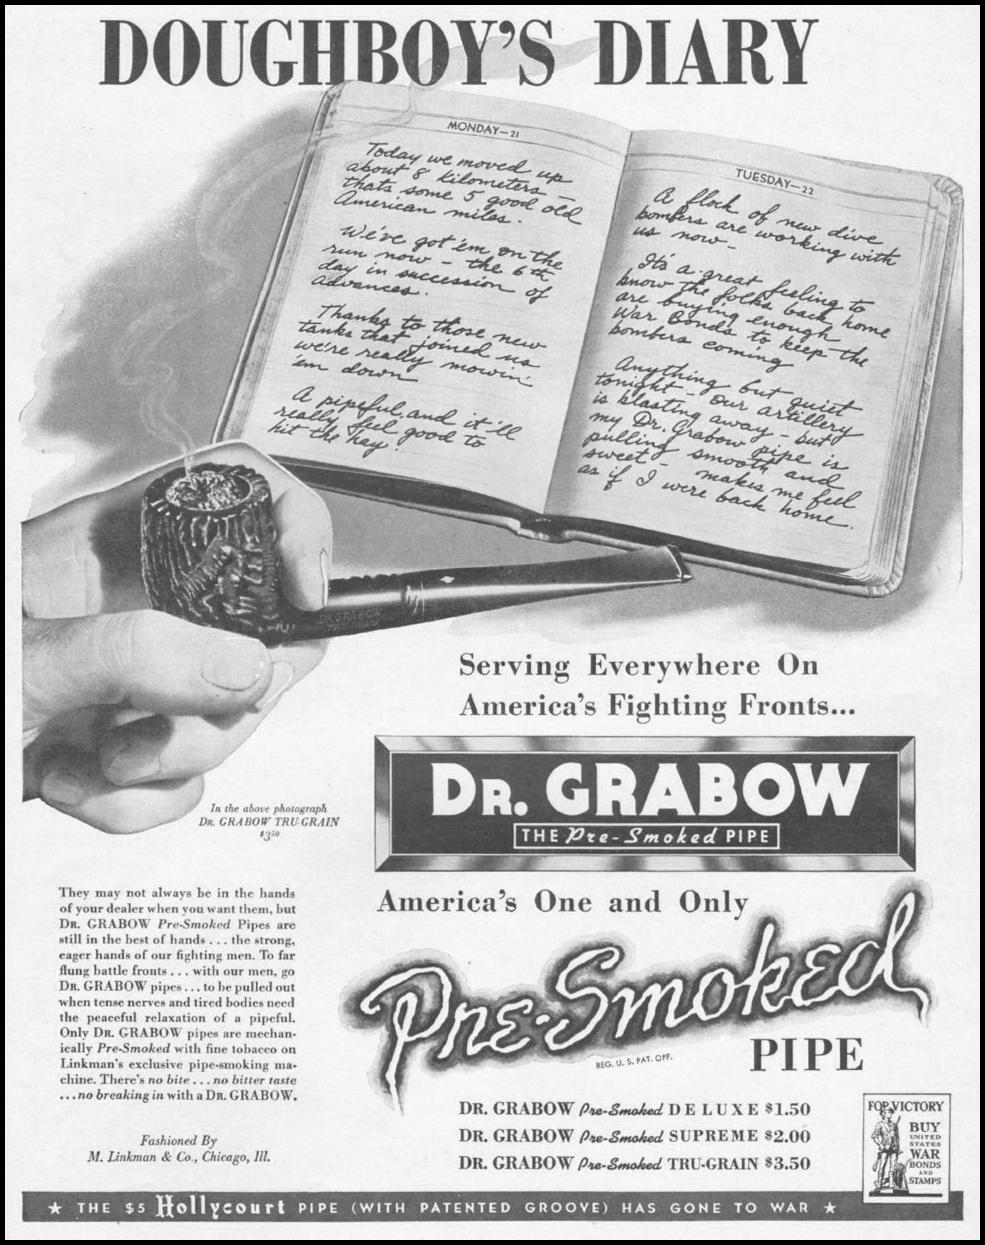 DR. GRABOW PRE-SMOKED PIPES LIFE 10/25/1943 p. 87